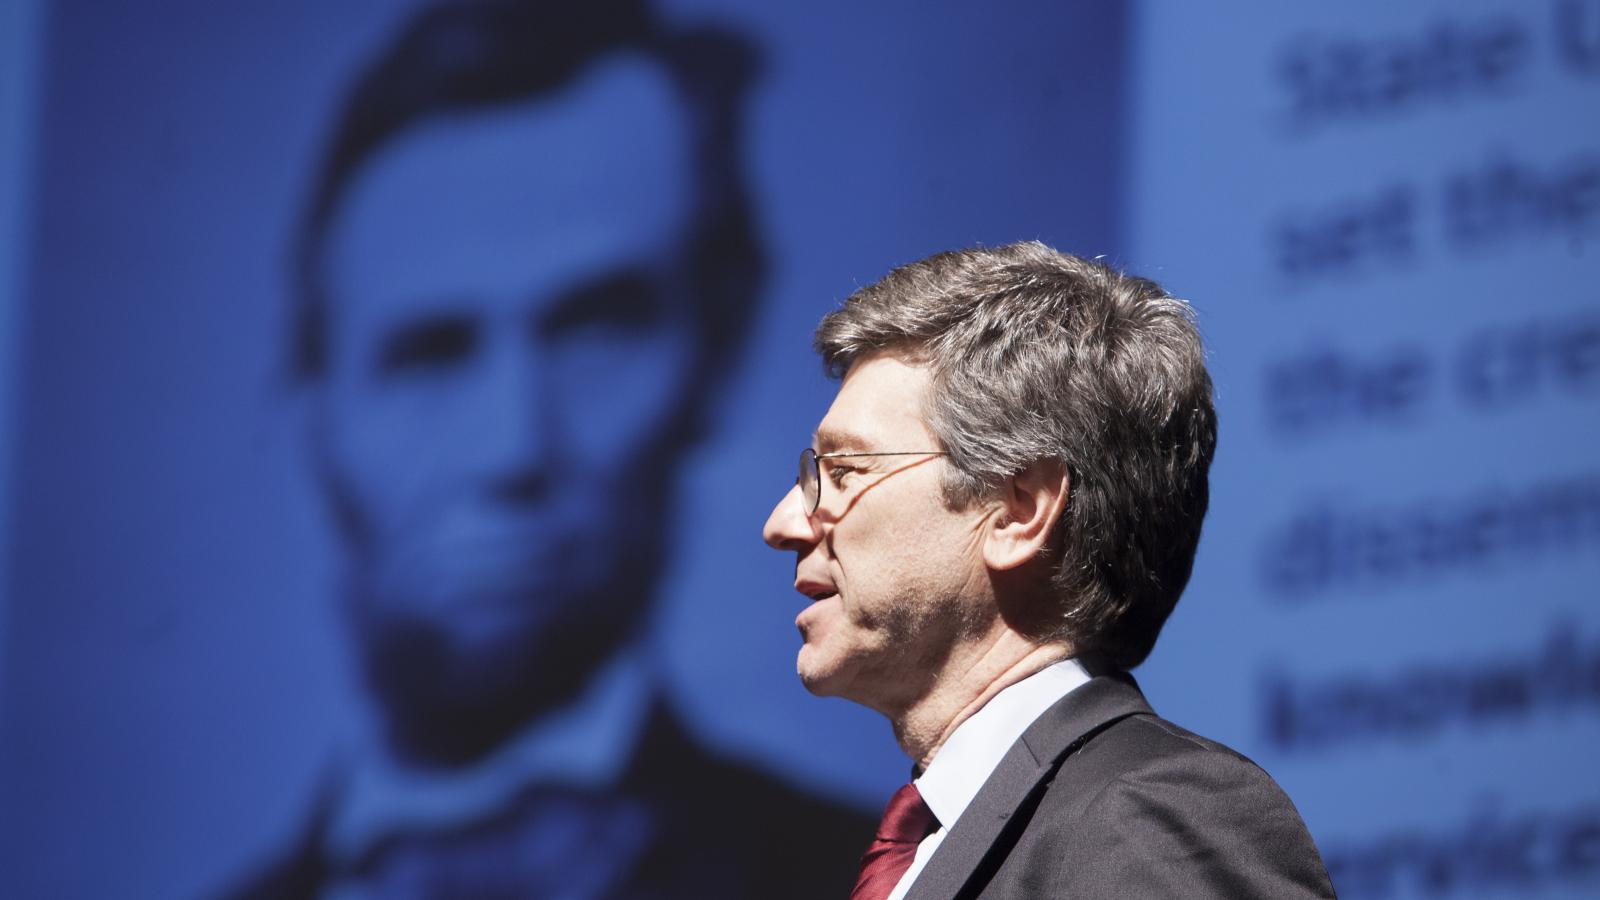 Photo of Jeffrey Sachs giving keynote address at COMPAS Conference